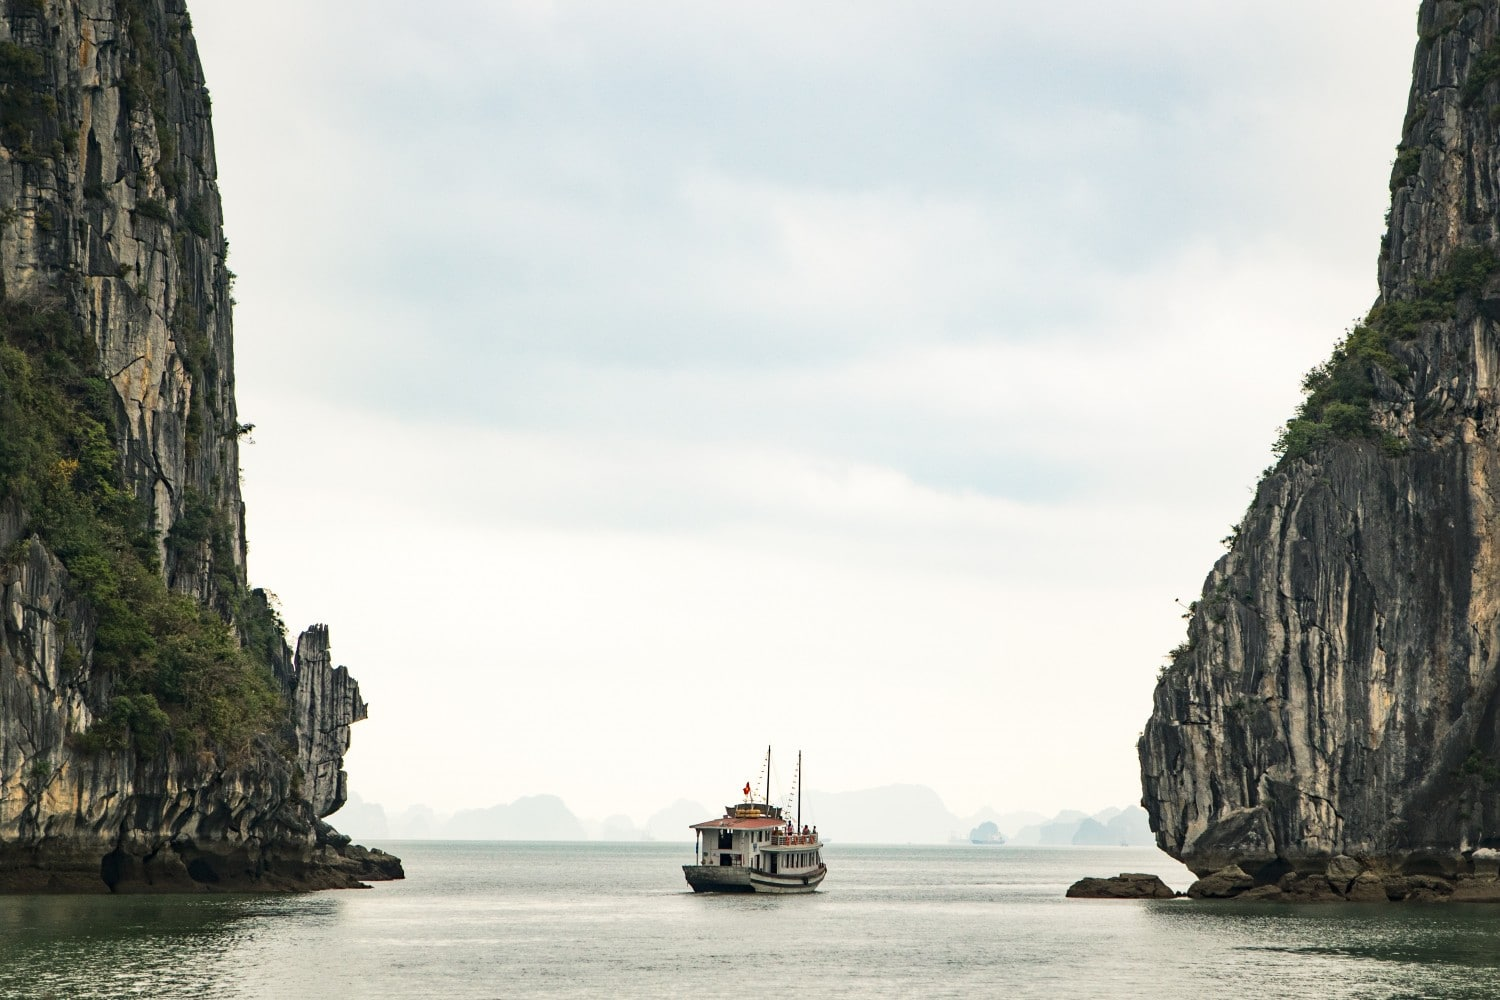 Ha Long Bay is one of the best places to visit in Vietnam. Photo by Ryan Waring on Unsplash